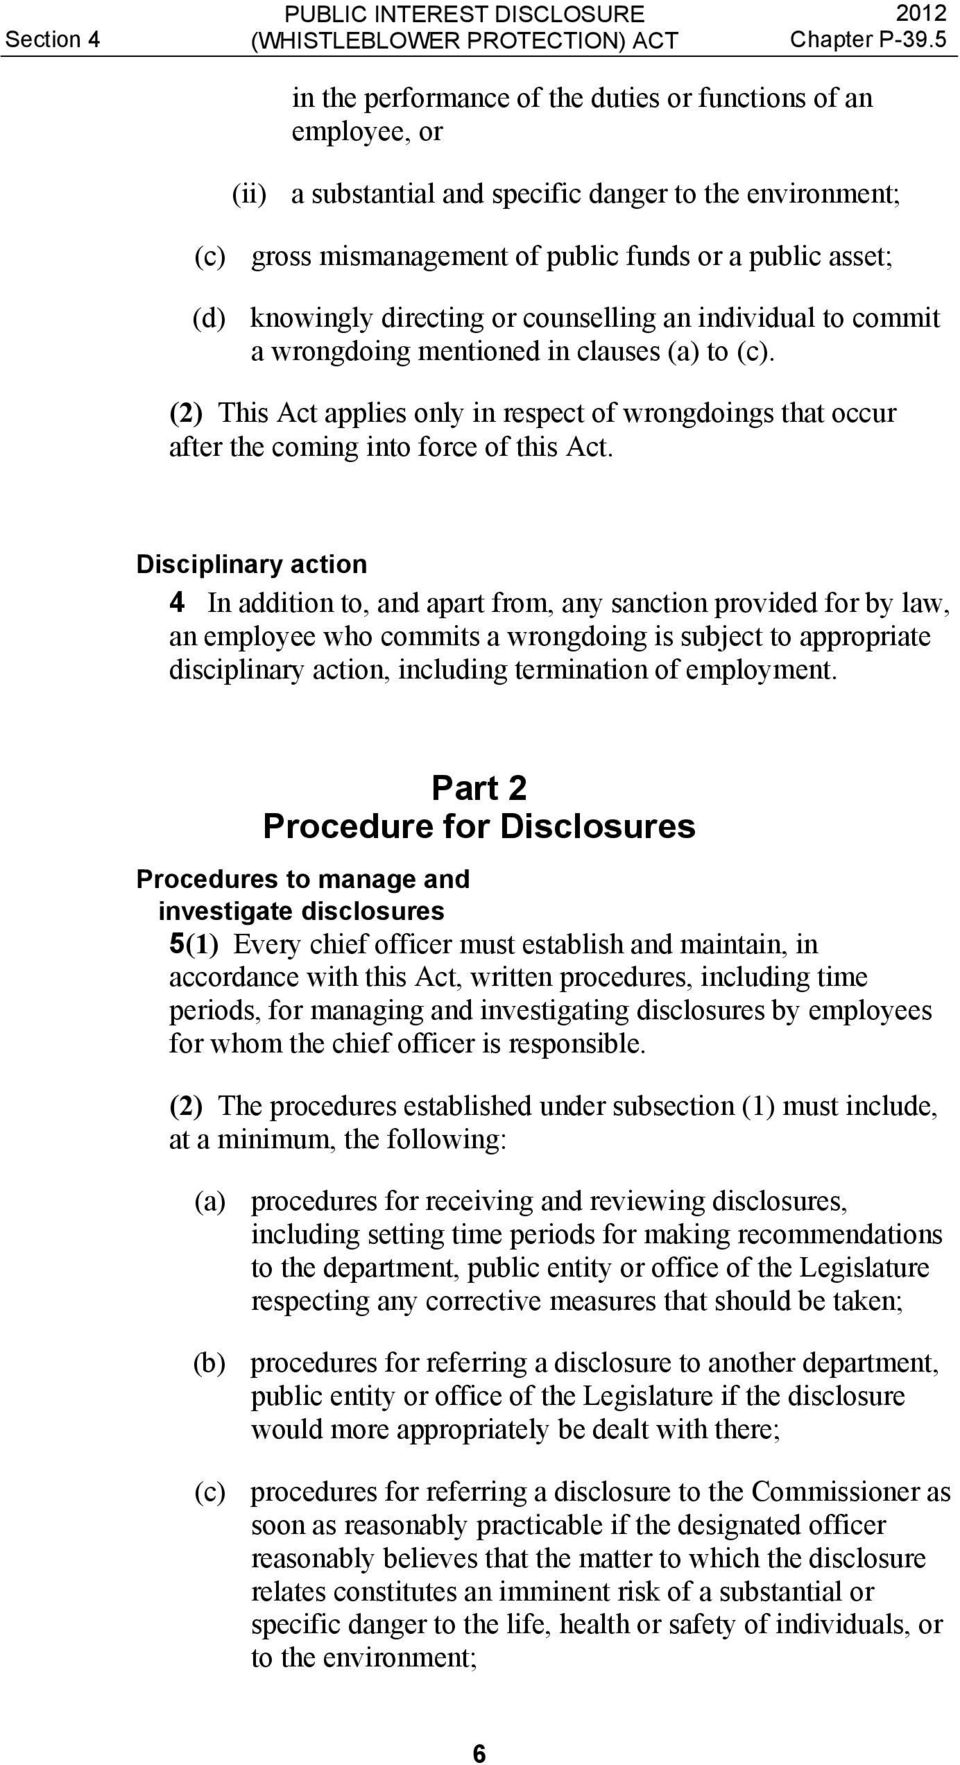 (2) This Act applies only in respect of wrongdoings that occur after the coming into force of this Act.